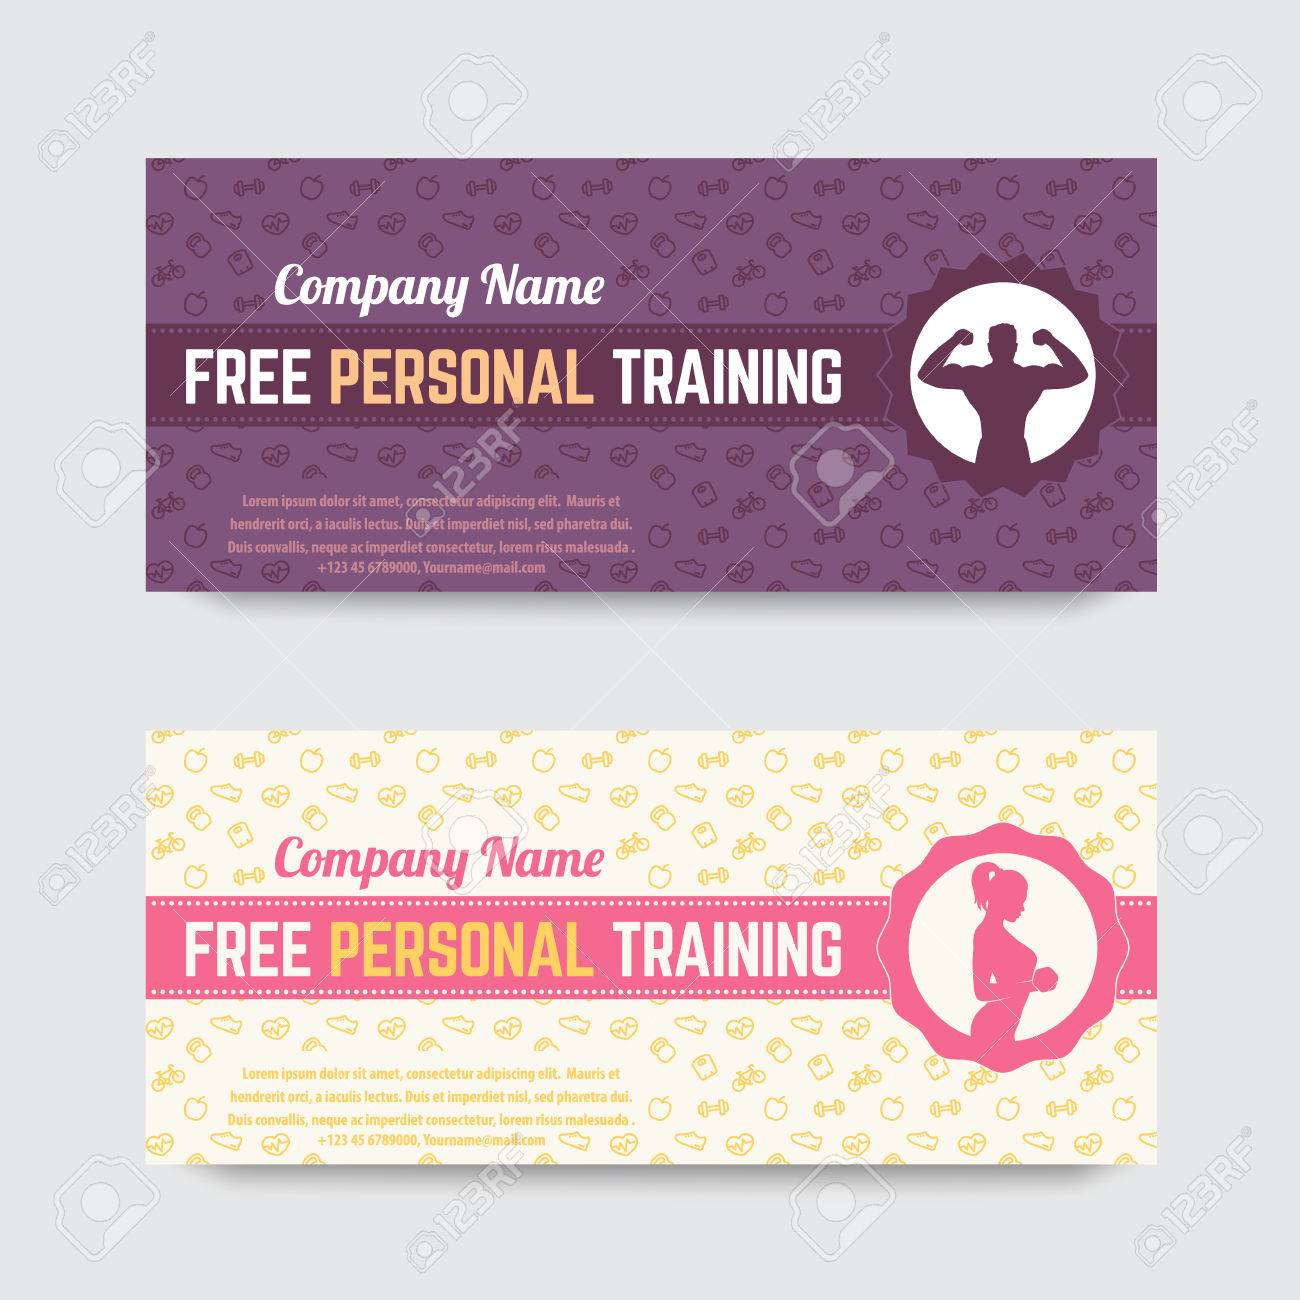 free personal training gift voucher design for gym fitness